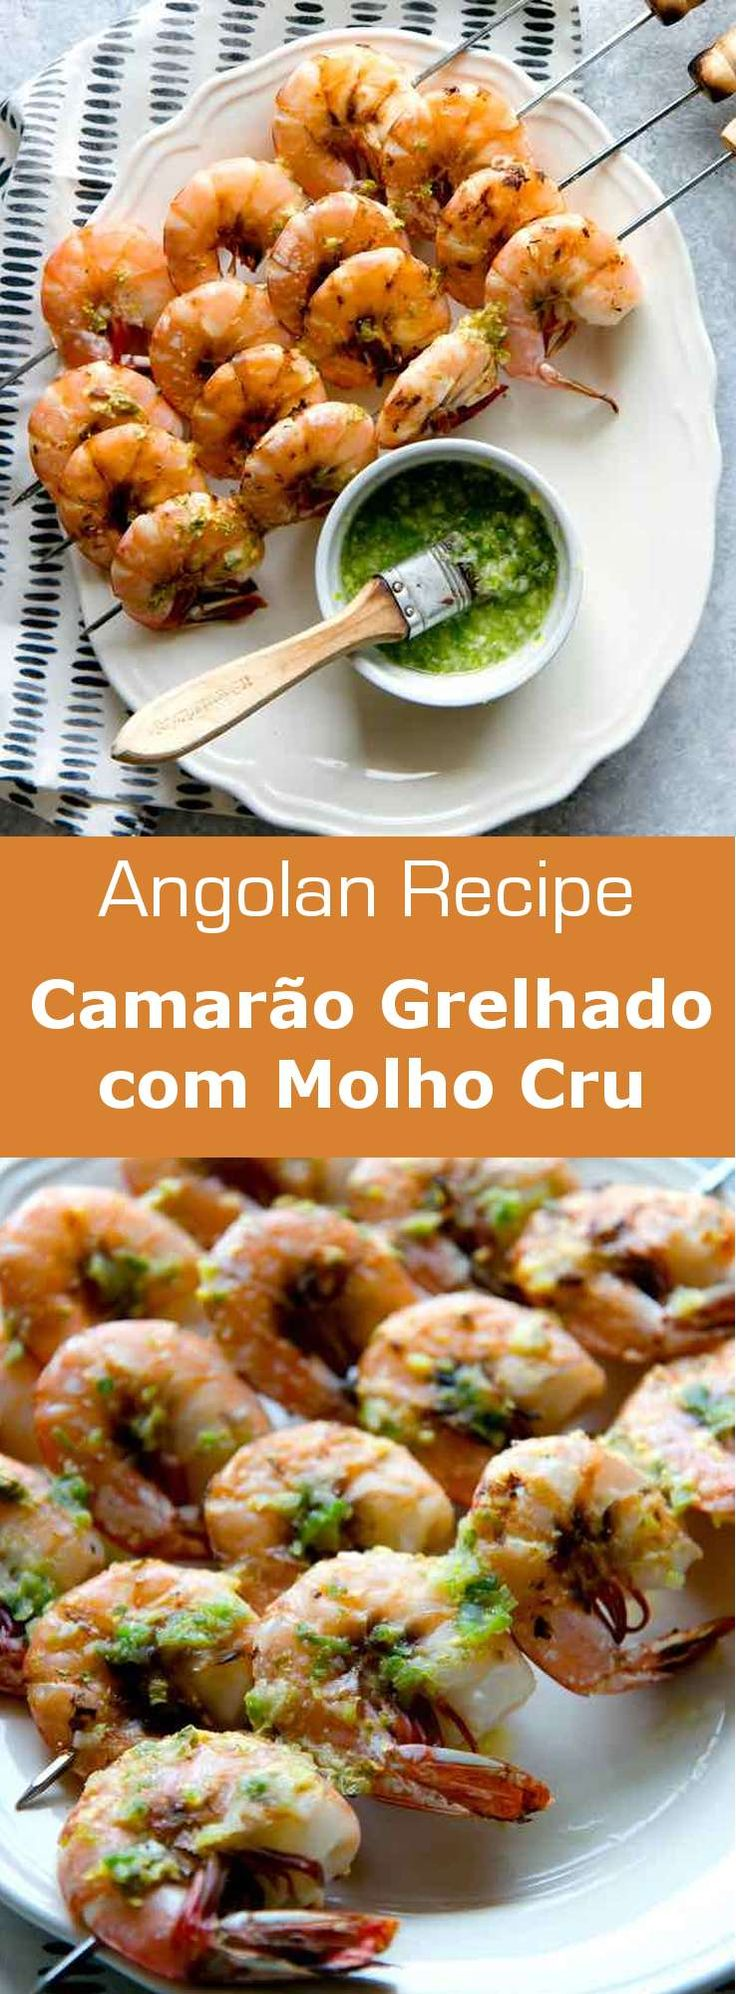 Camarão grelhado com molho cru is a grilled prawn dish from Angola prepared with a delicious marinade of scallions, garlic, cumin, and white wine vinegar. #Angola #AngolanCuisine #AfricanCuisine #WorldCuisine #196flavors